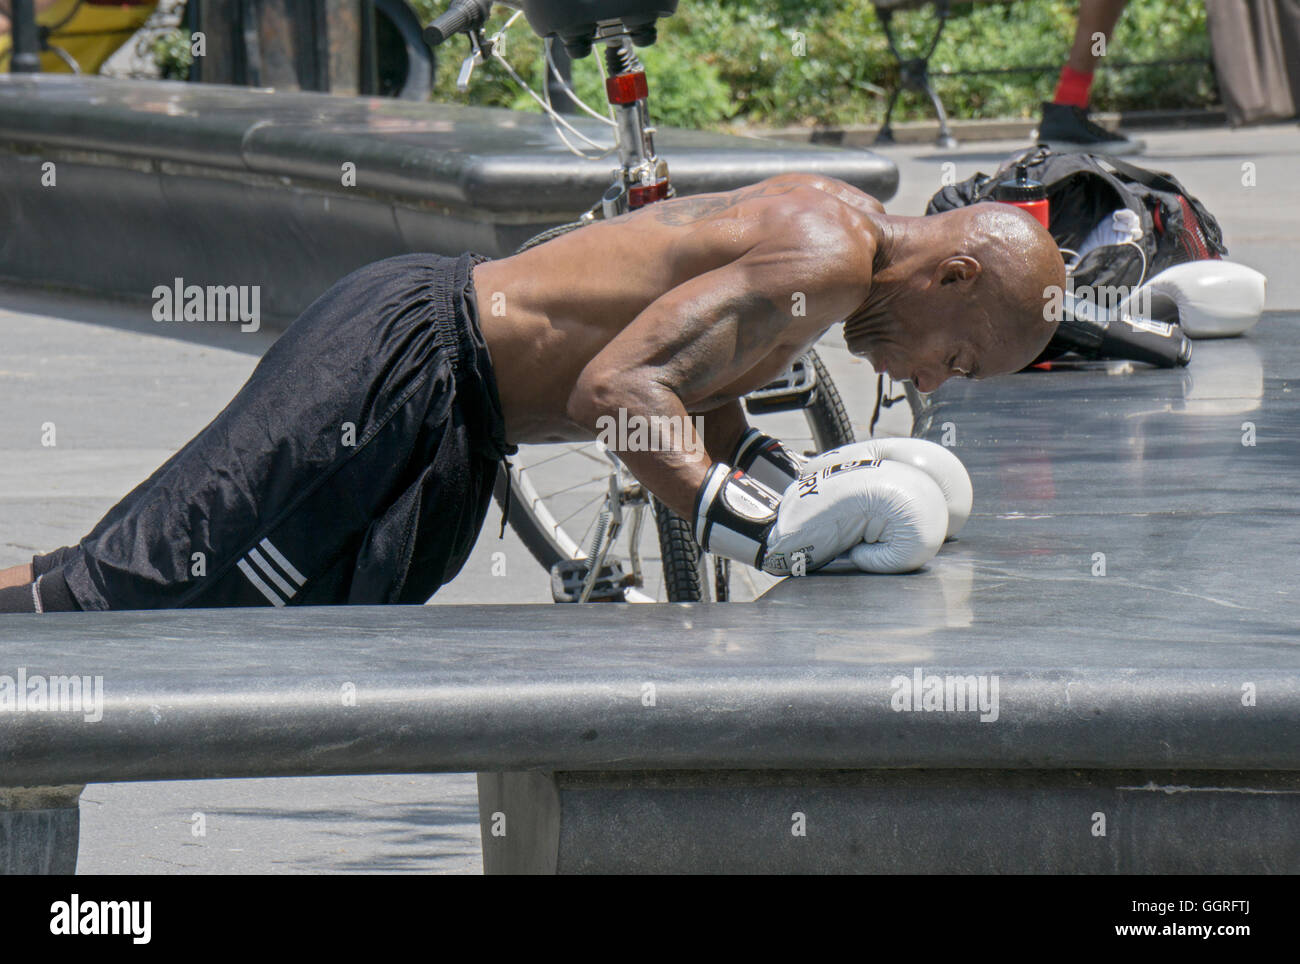 A boxer in boxing gloves training in Washington Square Park in New York City does pushups against a stone bench - Stock Image